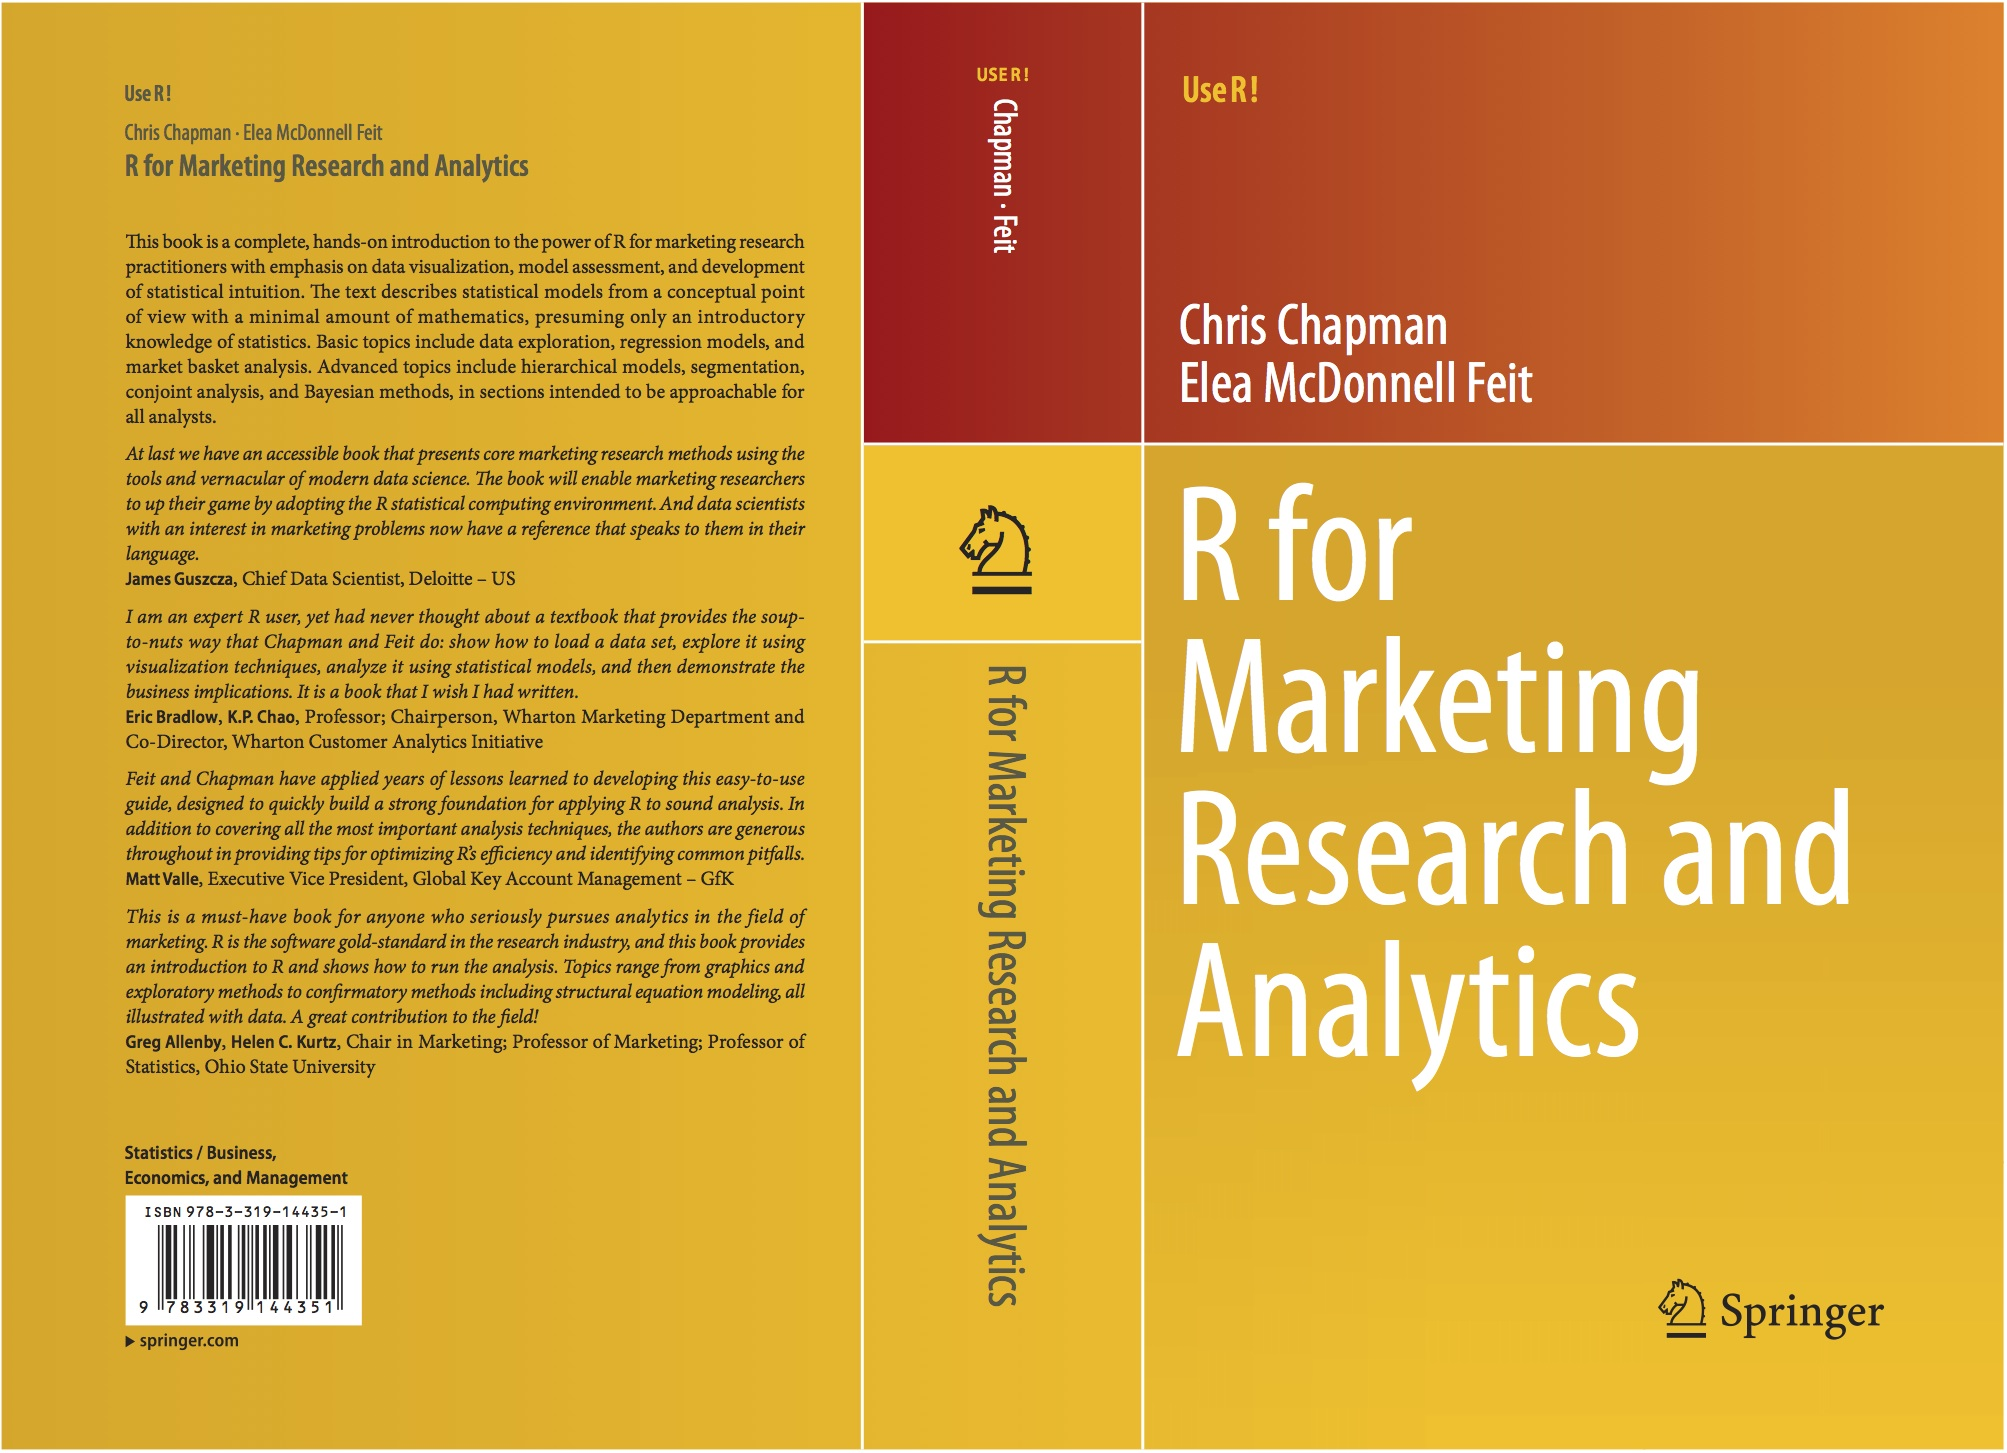 Chapman & Feit: R for Marketing Research and Analytics